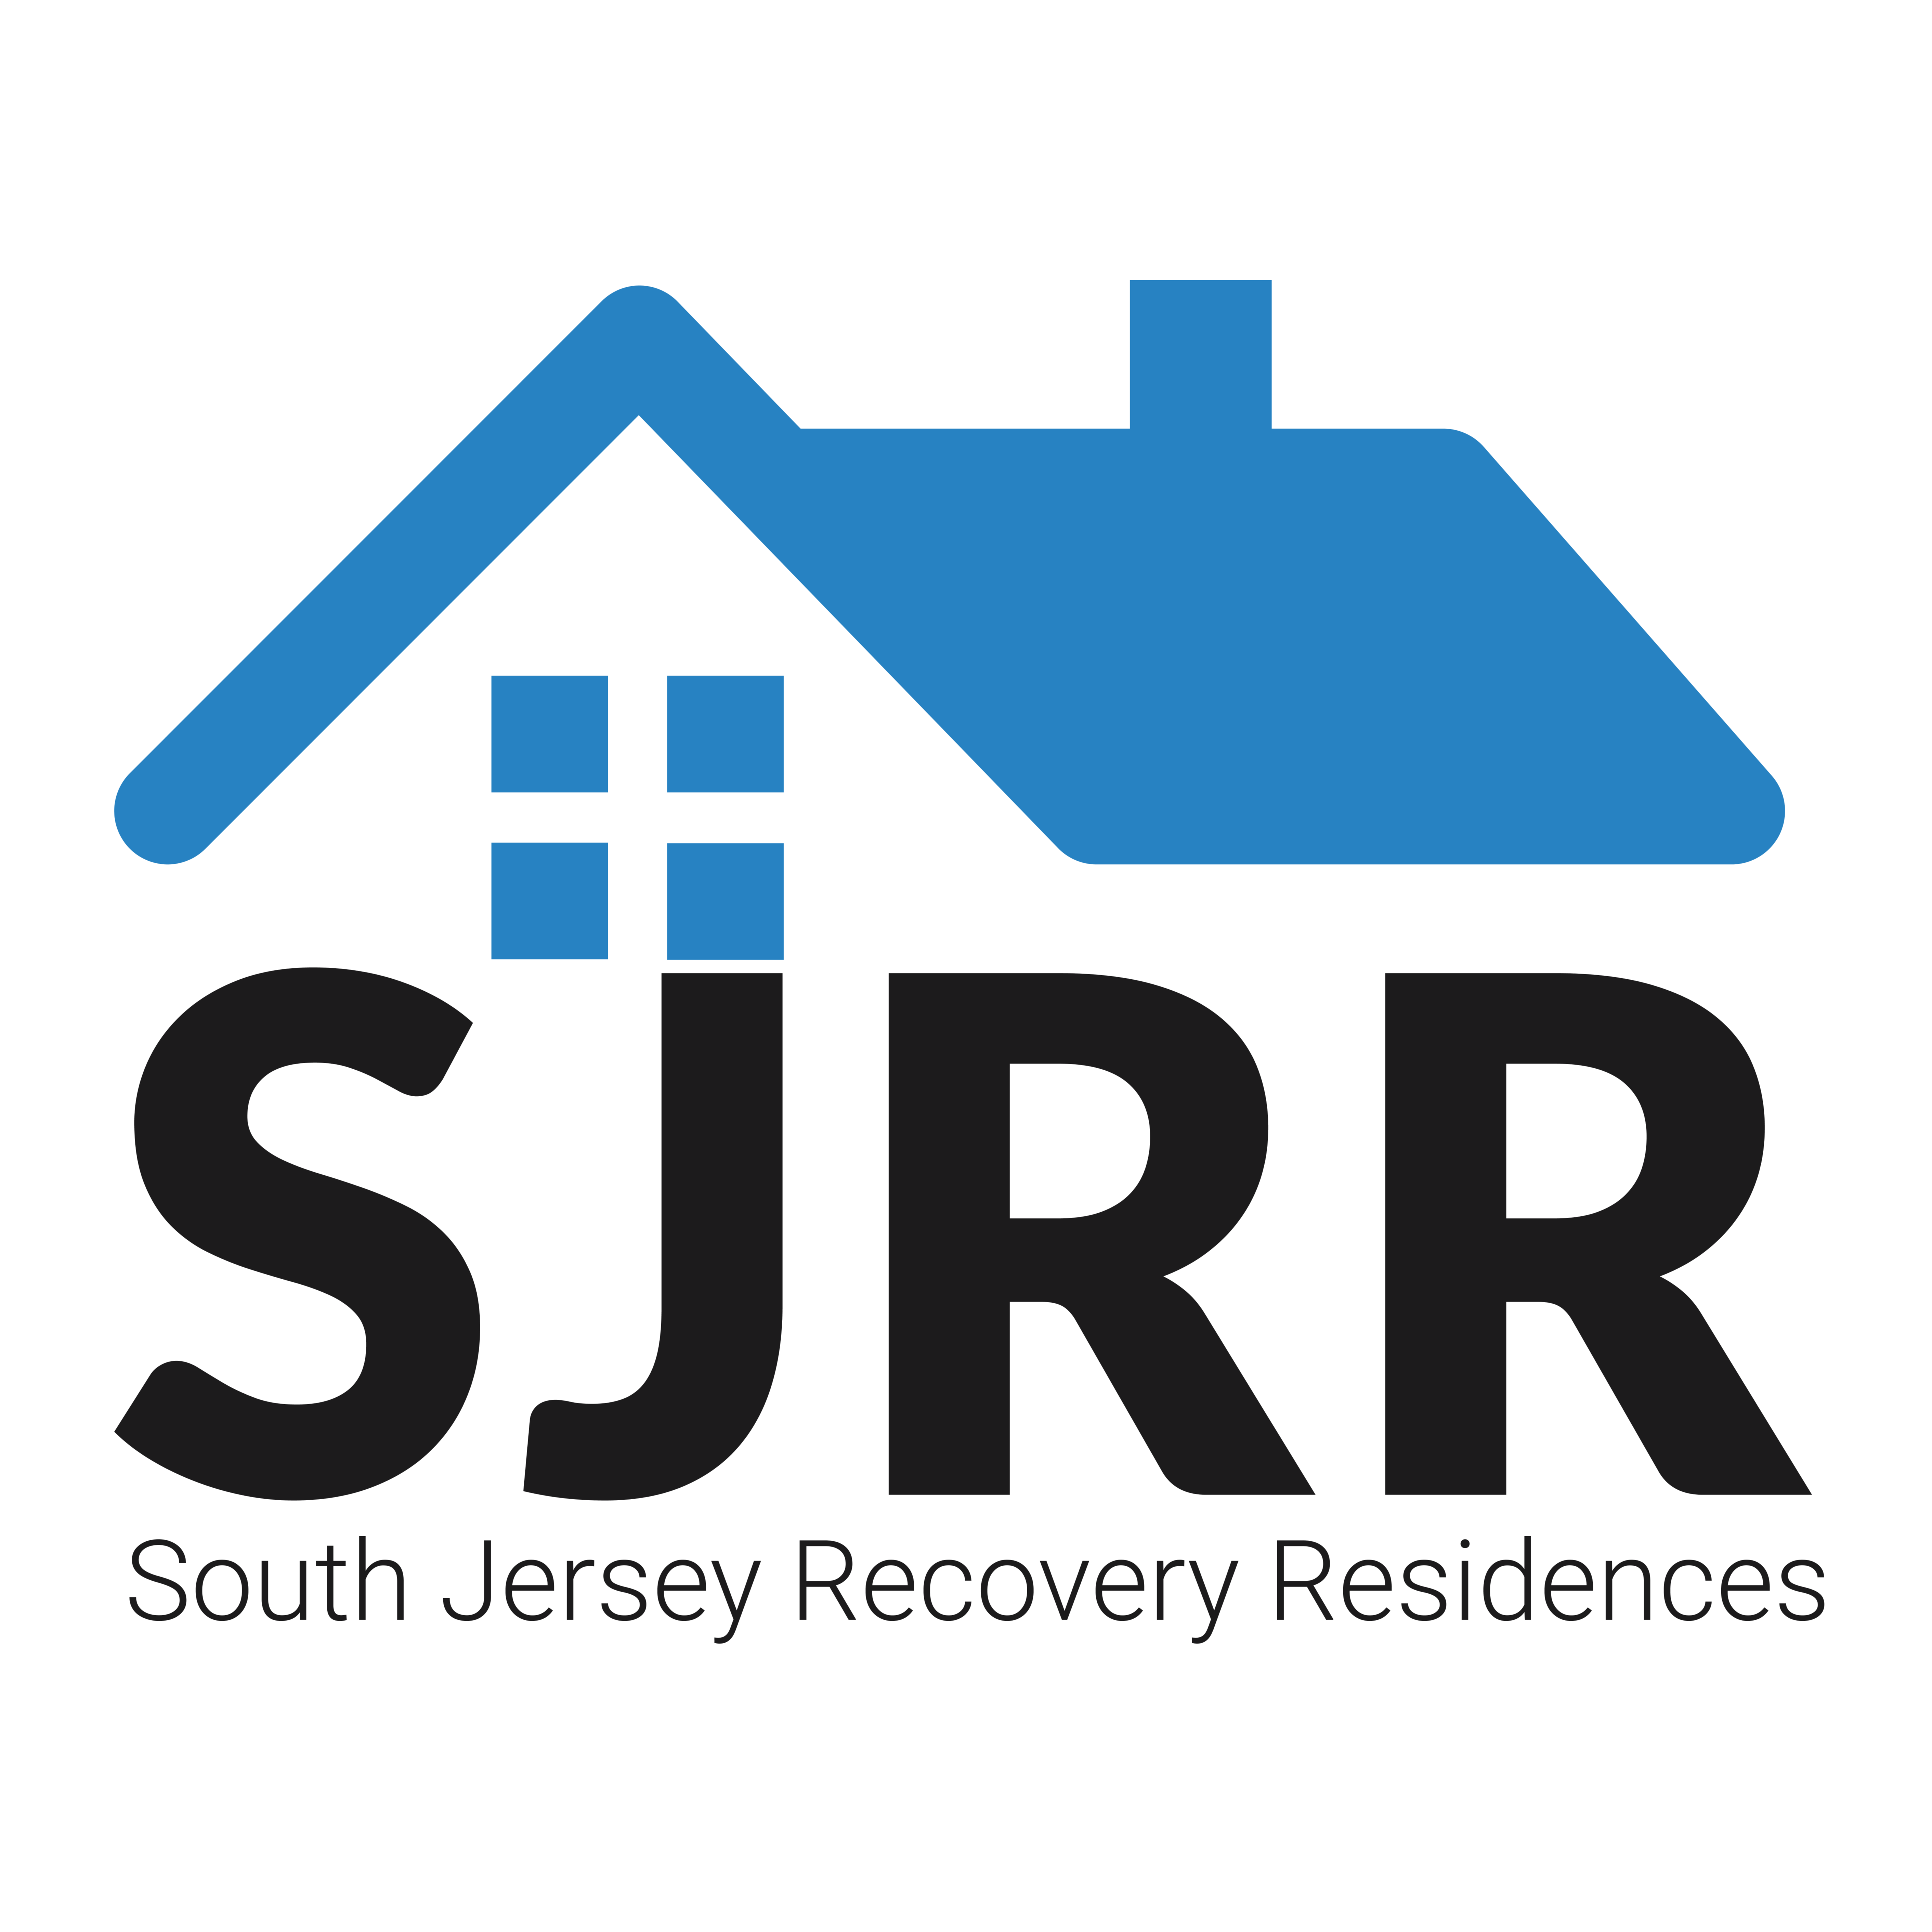 South Jersey Recovery Residences